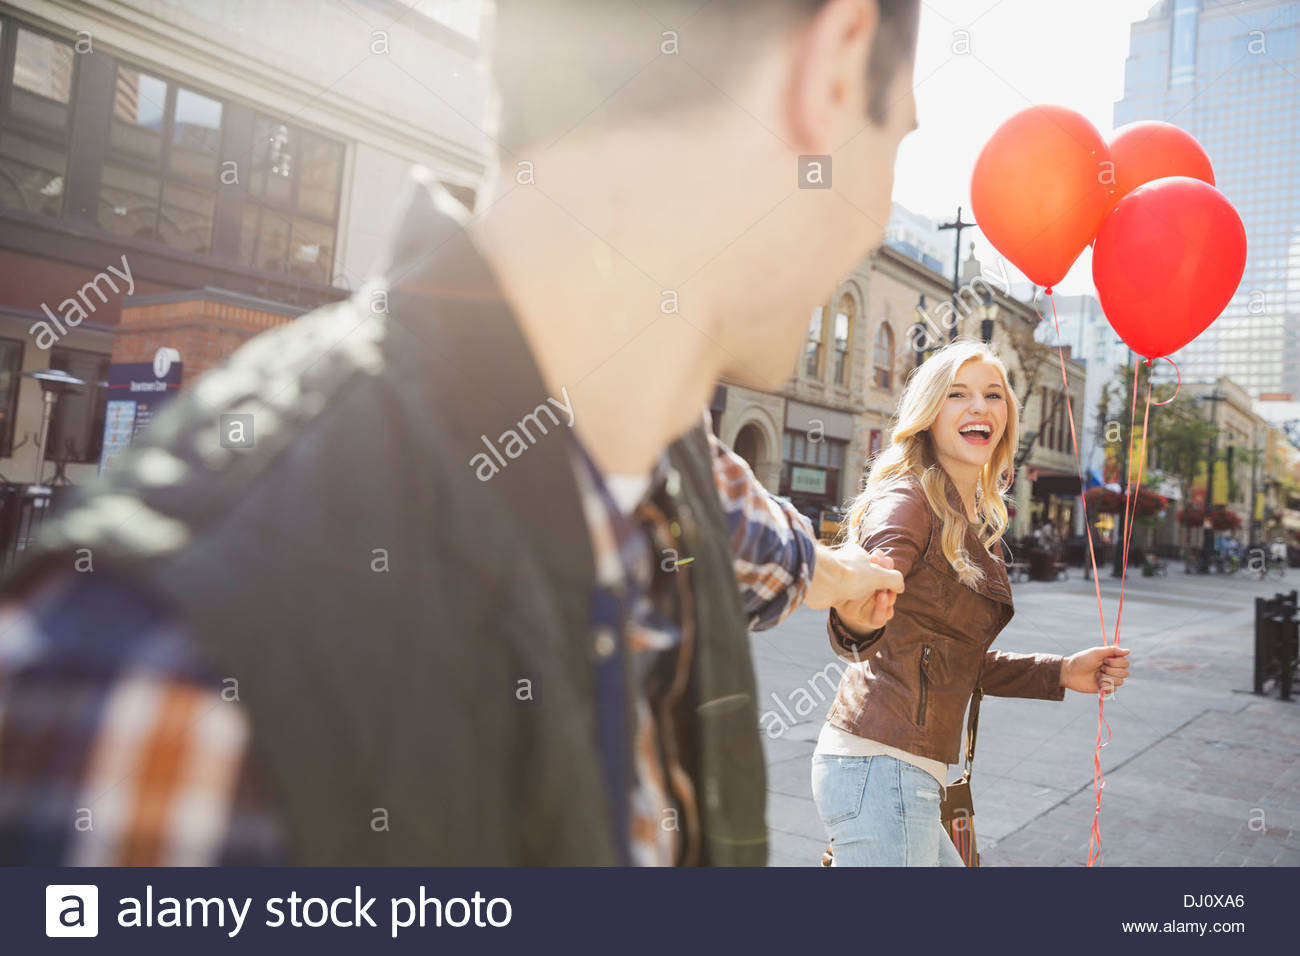 Smiling woman leading man down city street - Stock Image